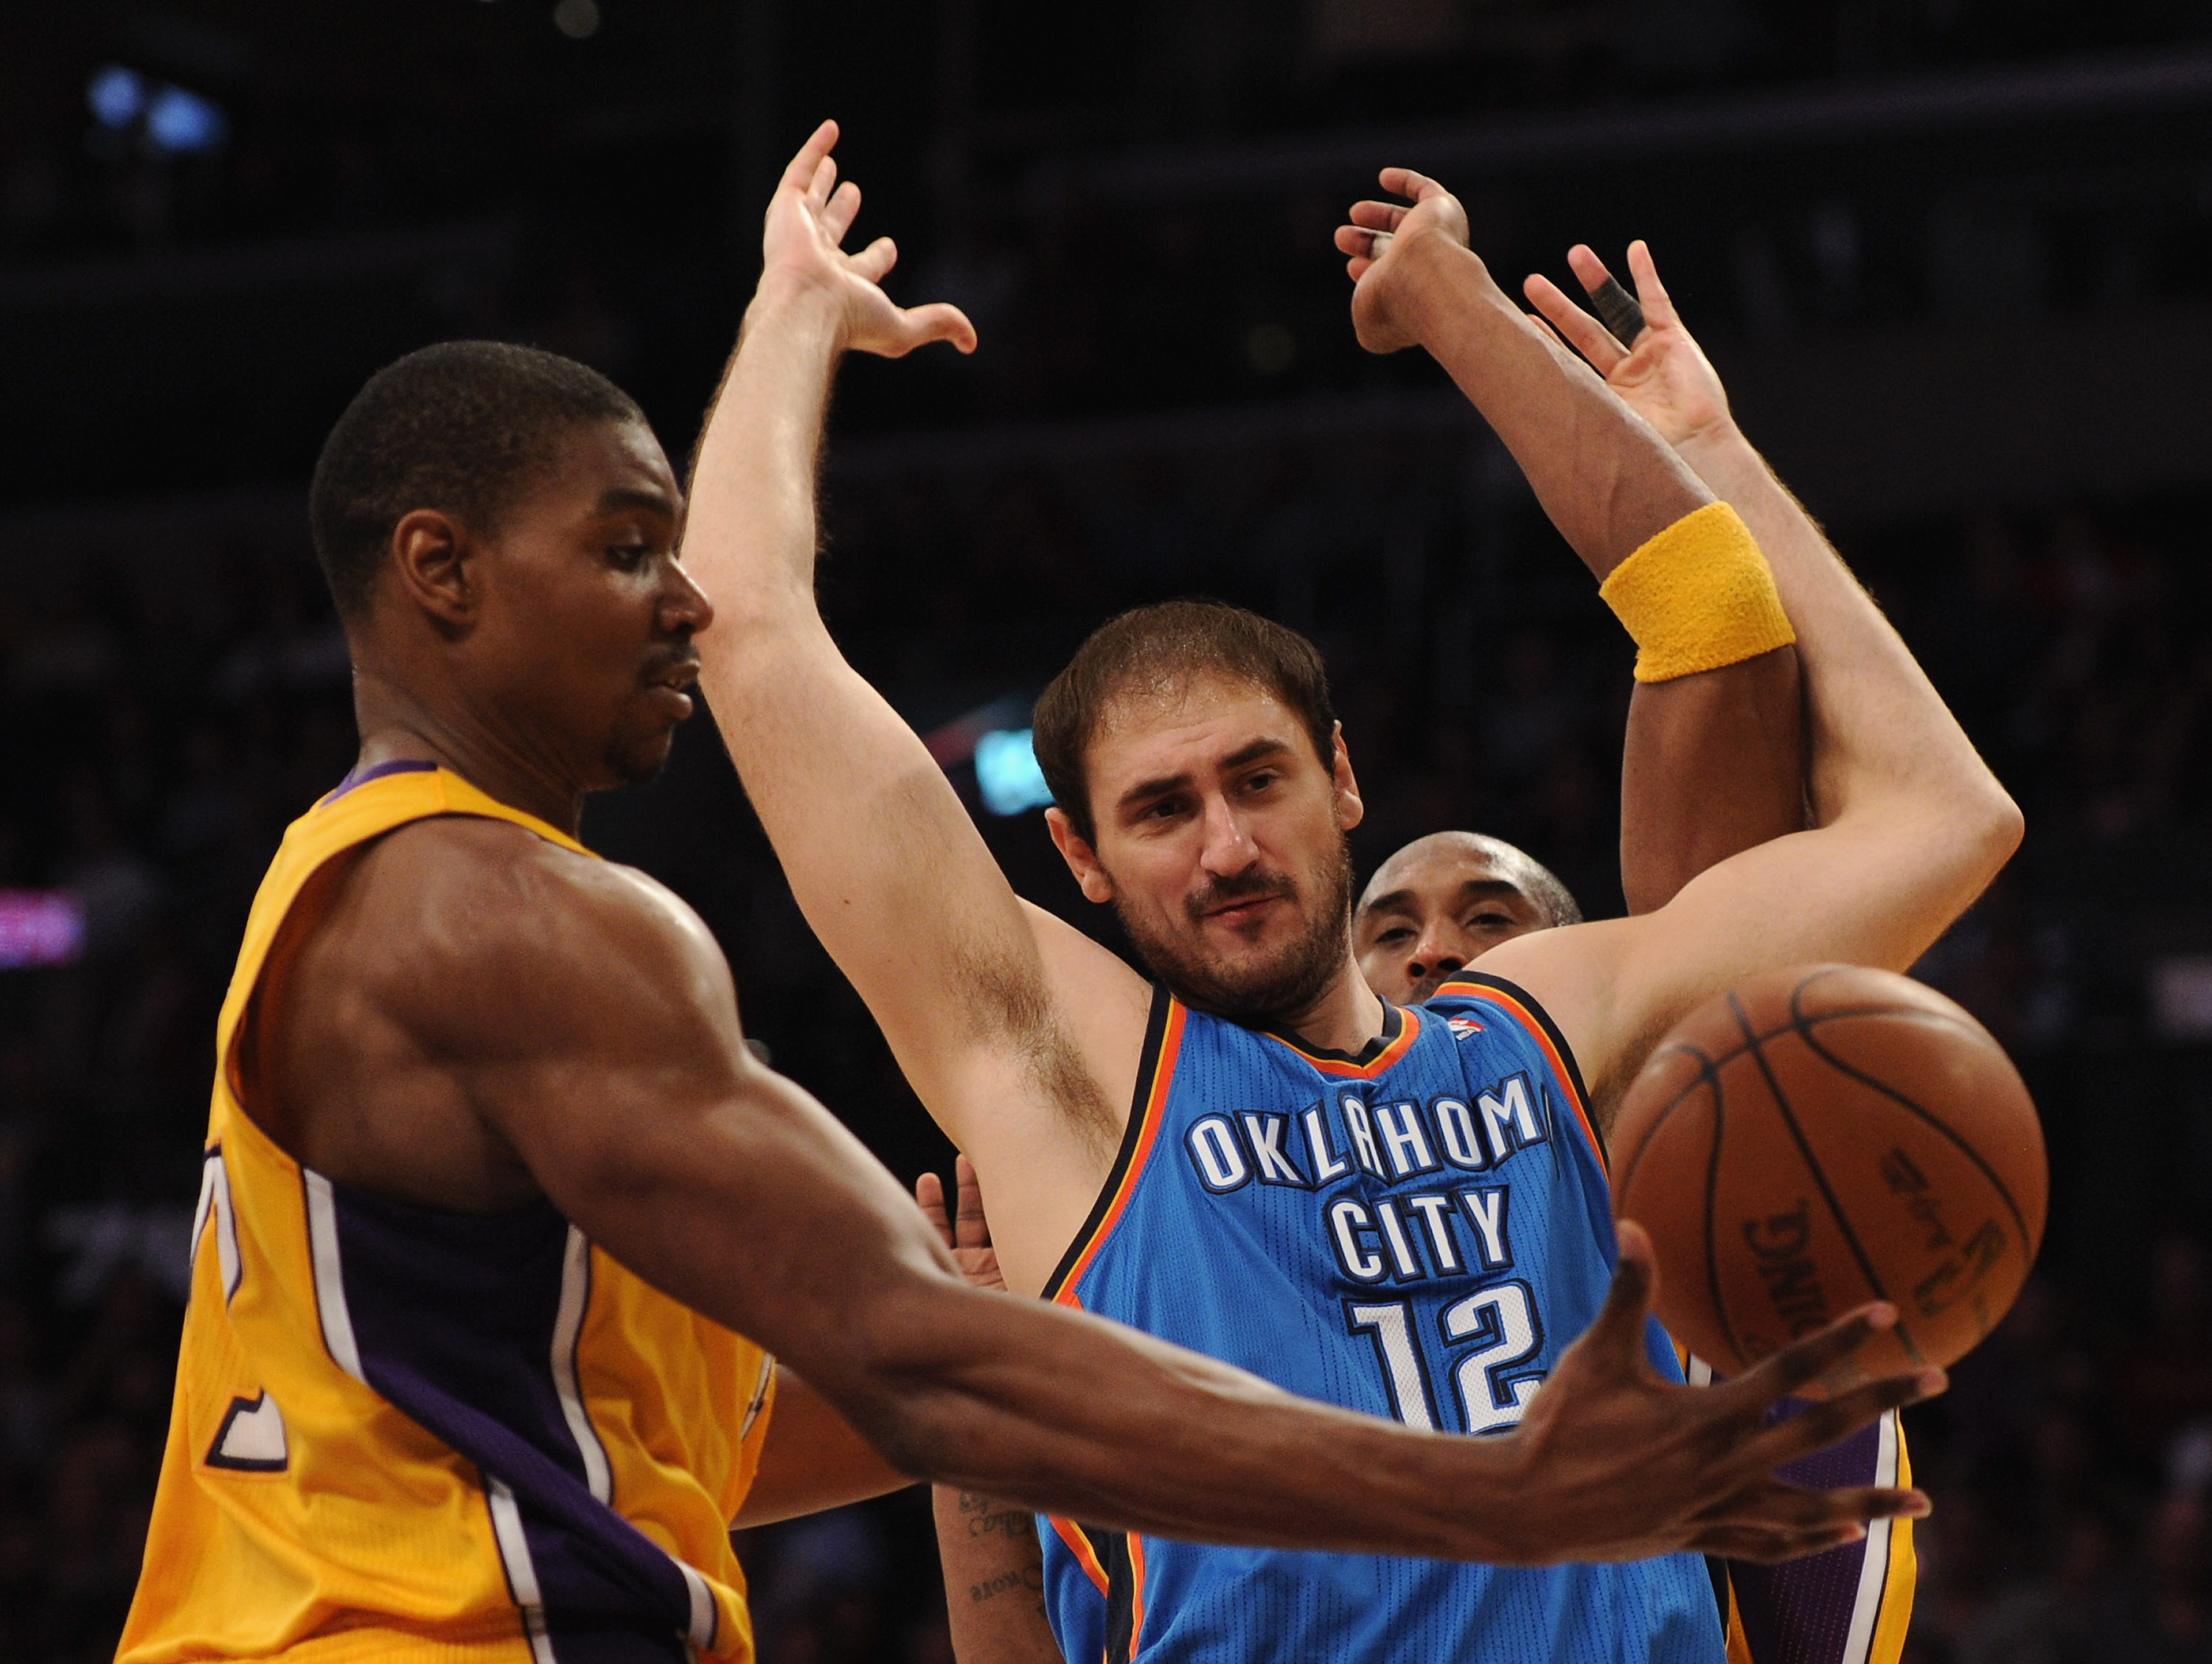 LOS ANGELES, CA - JANUARY 17:  Nenad Krstic #12 of the Oklahoma City Thunder is fouled by Kobe Bryant #24 Los Angeles Lakers as Andrew Bynum #17 takes the ball during a 101-94 Laker win at the Staples Center on January 17, 2011 in Los Angeles, California.